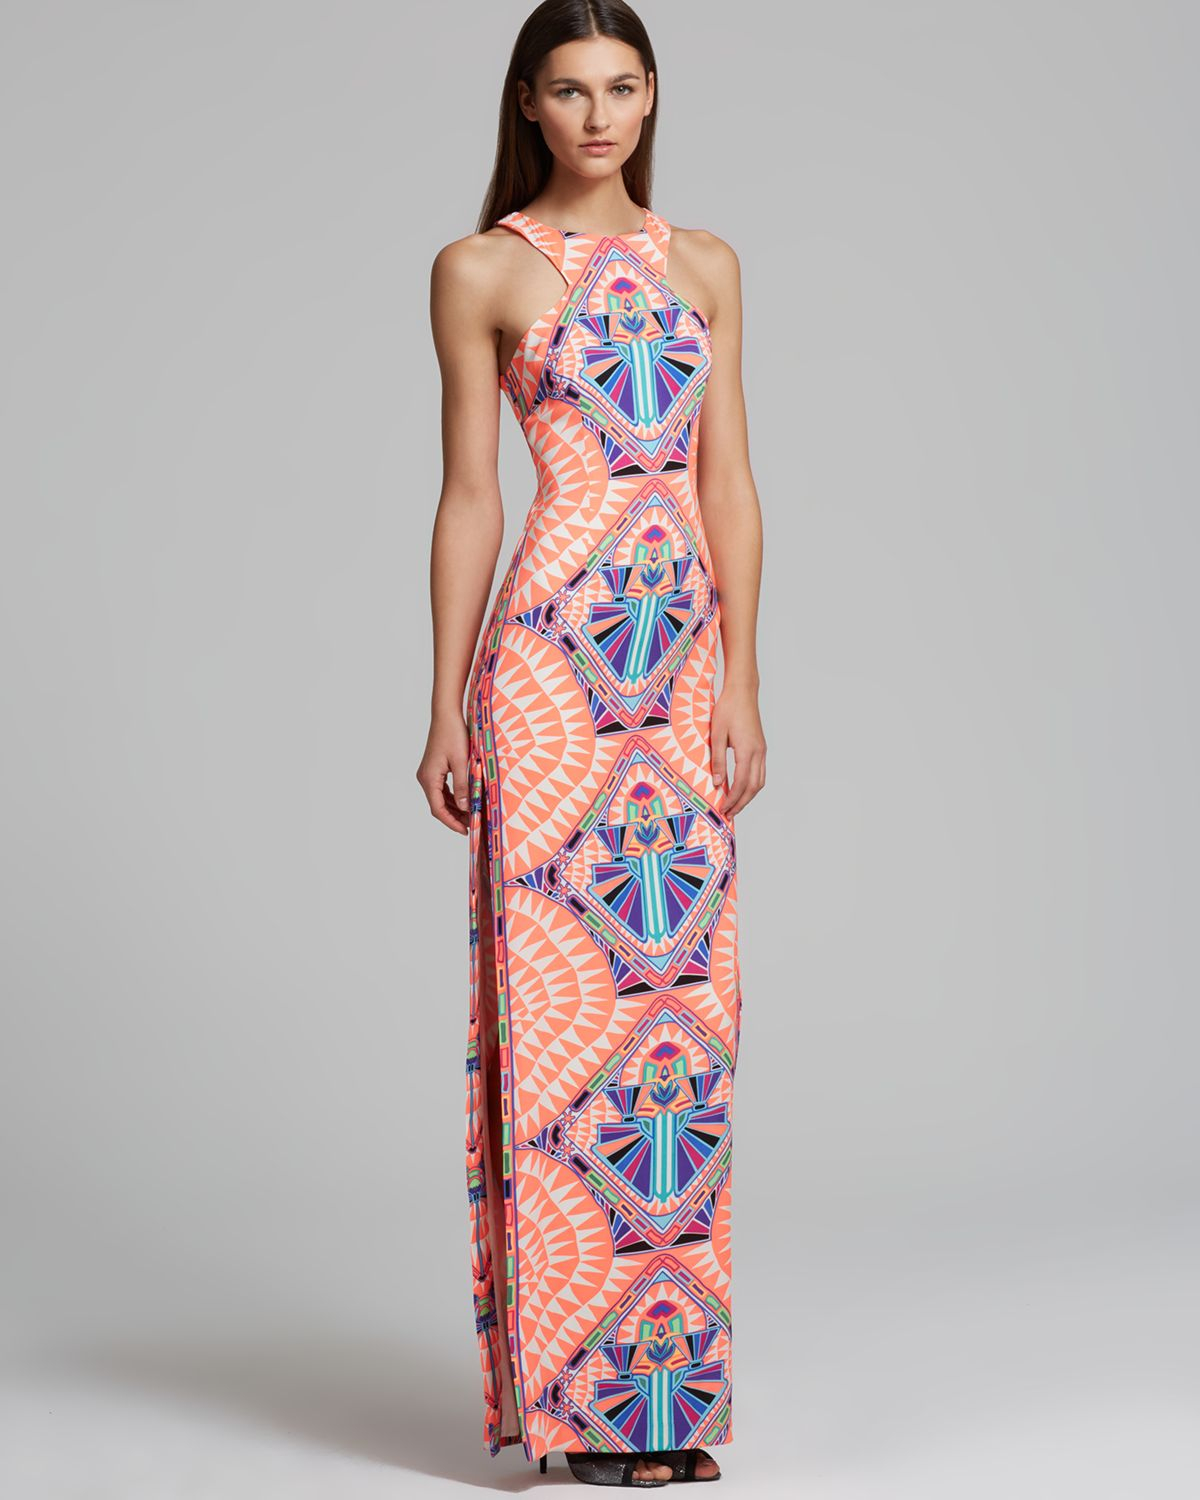 Mara hoffman Maxi Dress High Neck Printed in Blue | Lyst